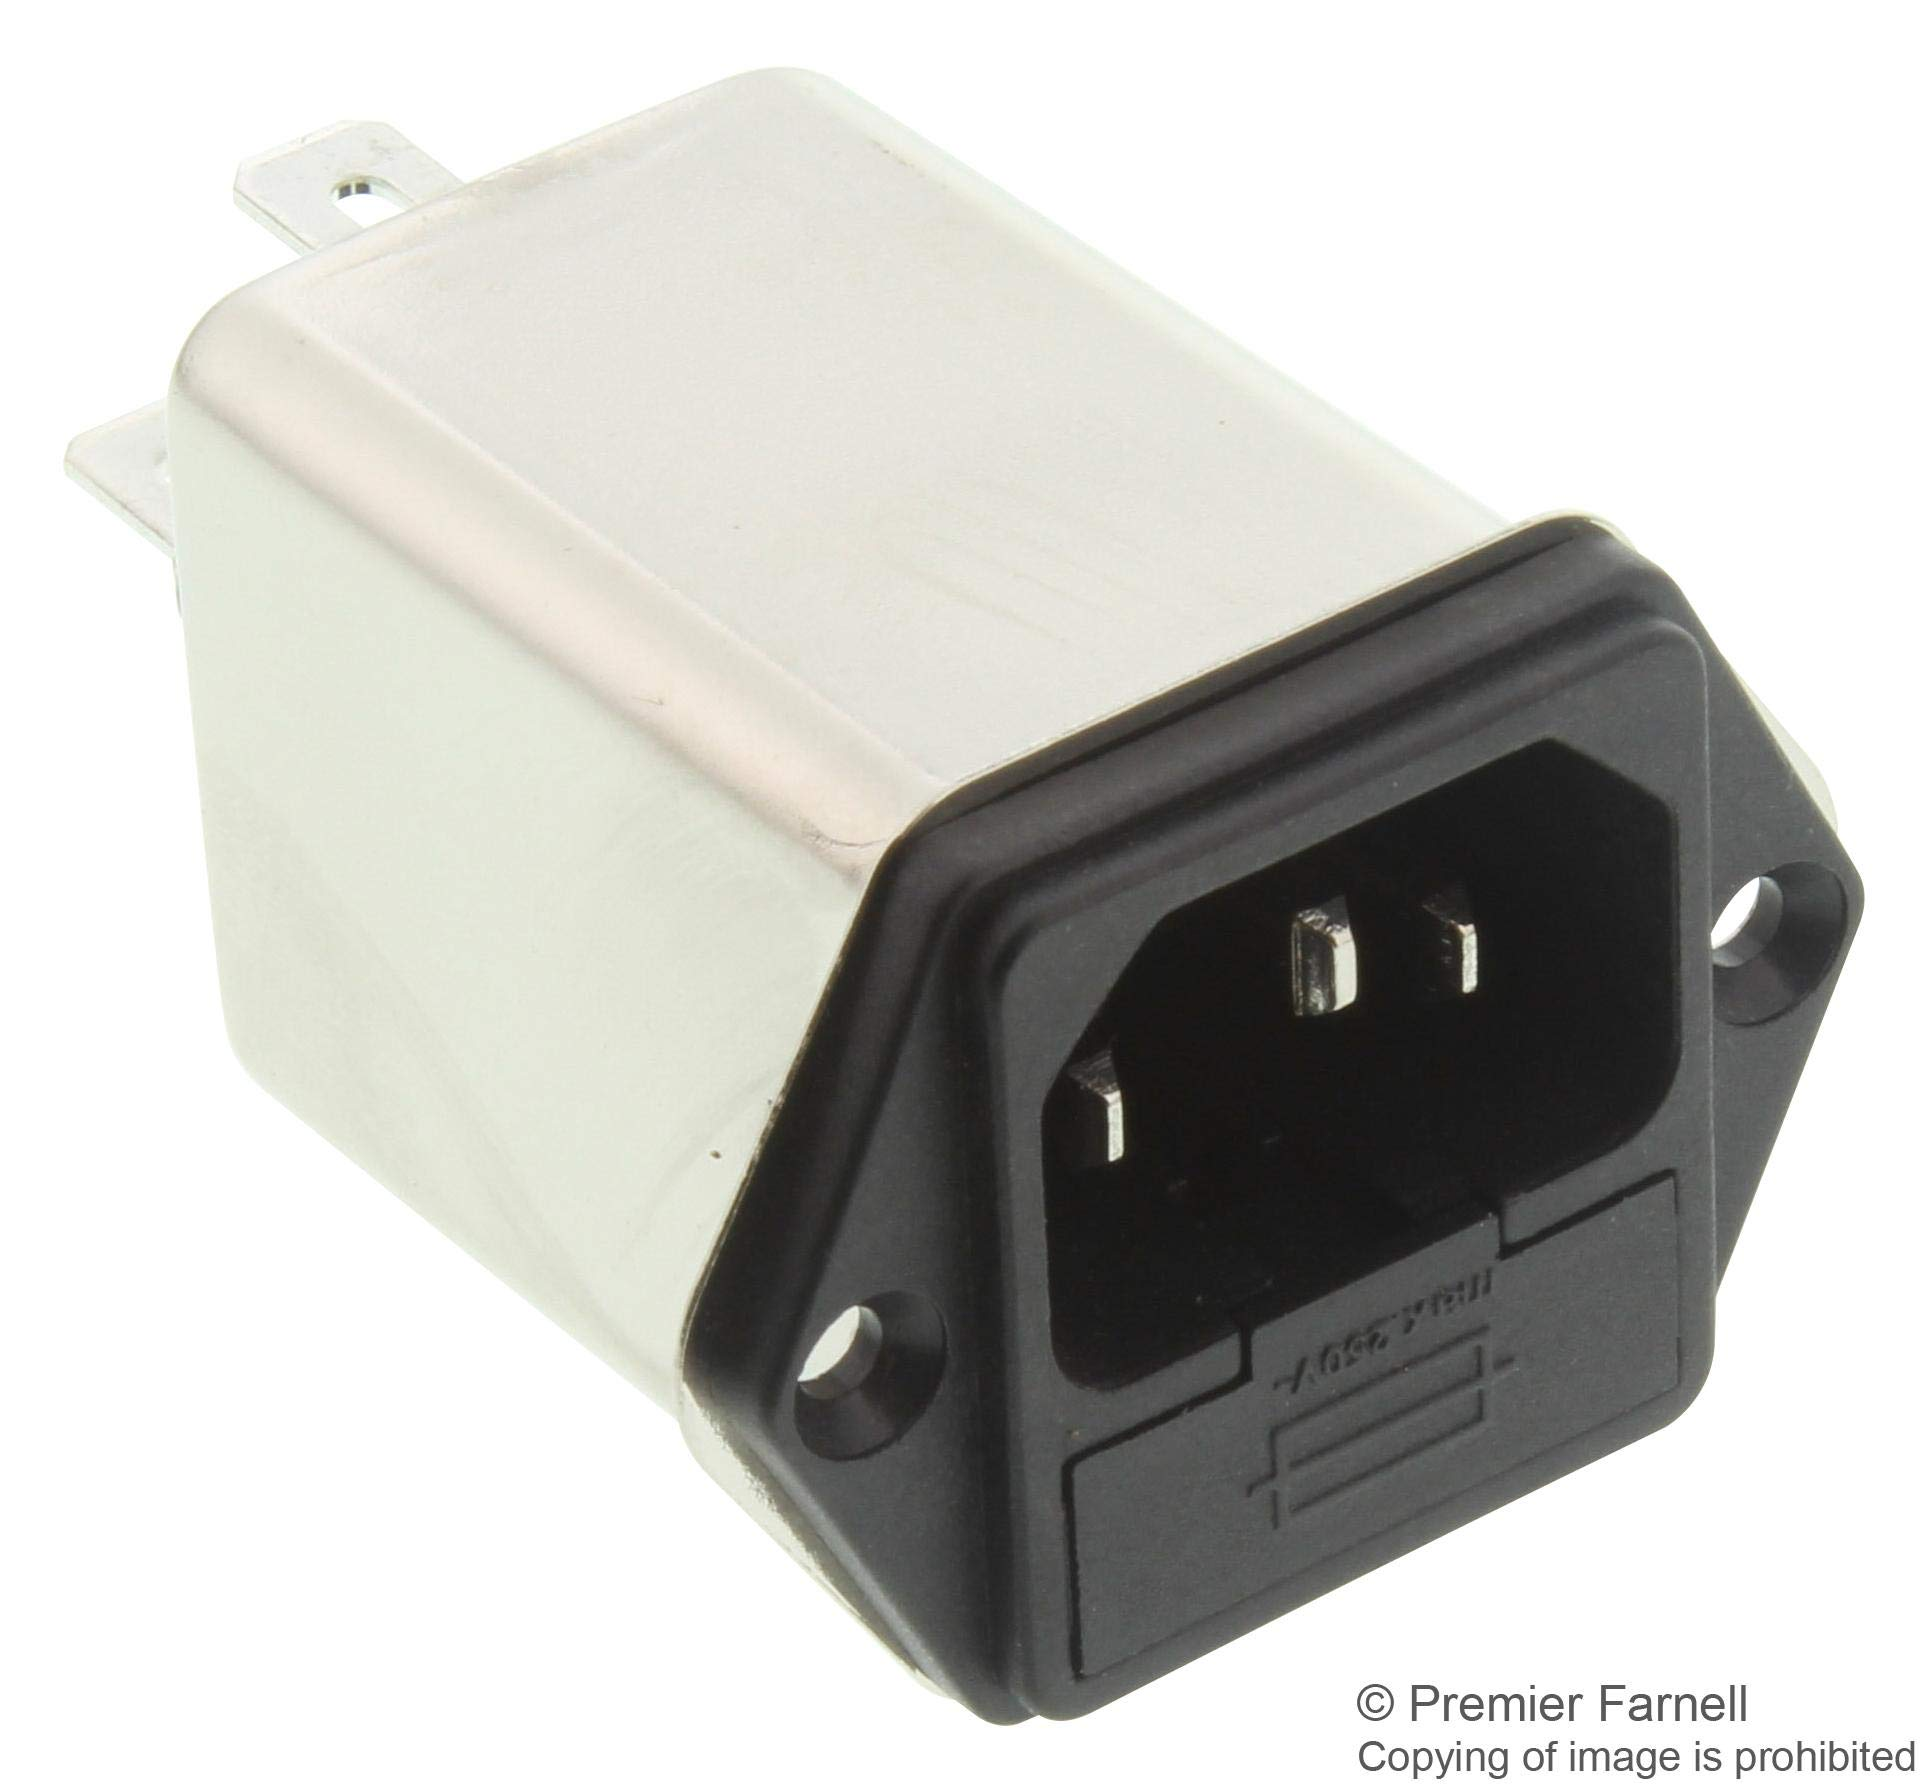 FN9260B-6-06 - Power Entry Module, General Purpose, Medical, IEC Inlet, 6A, 250V, Quick Connect, (Pack of 2) (FN9260B-6-06)